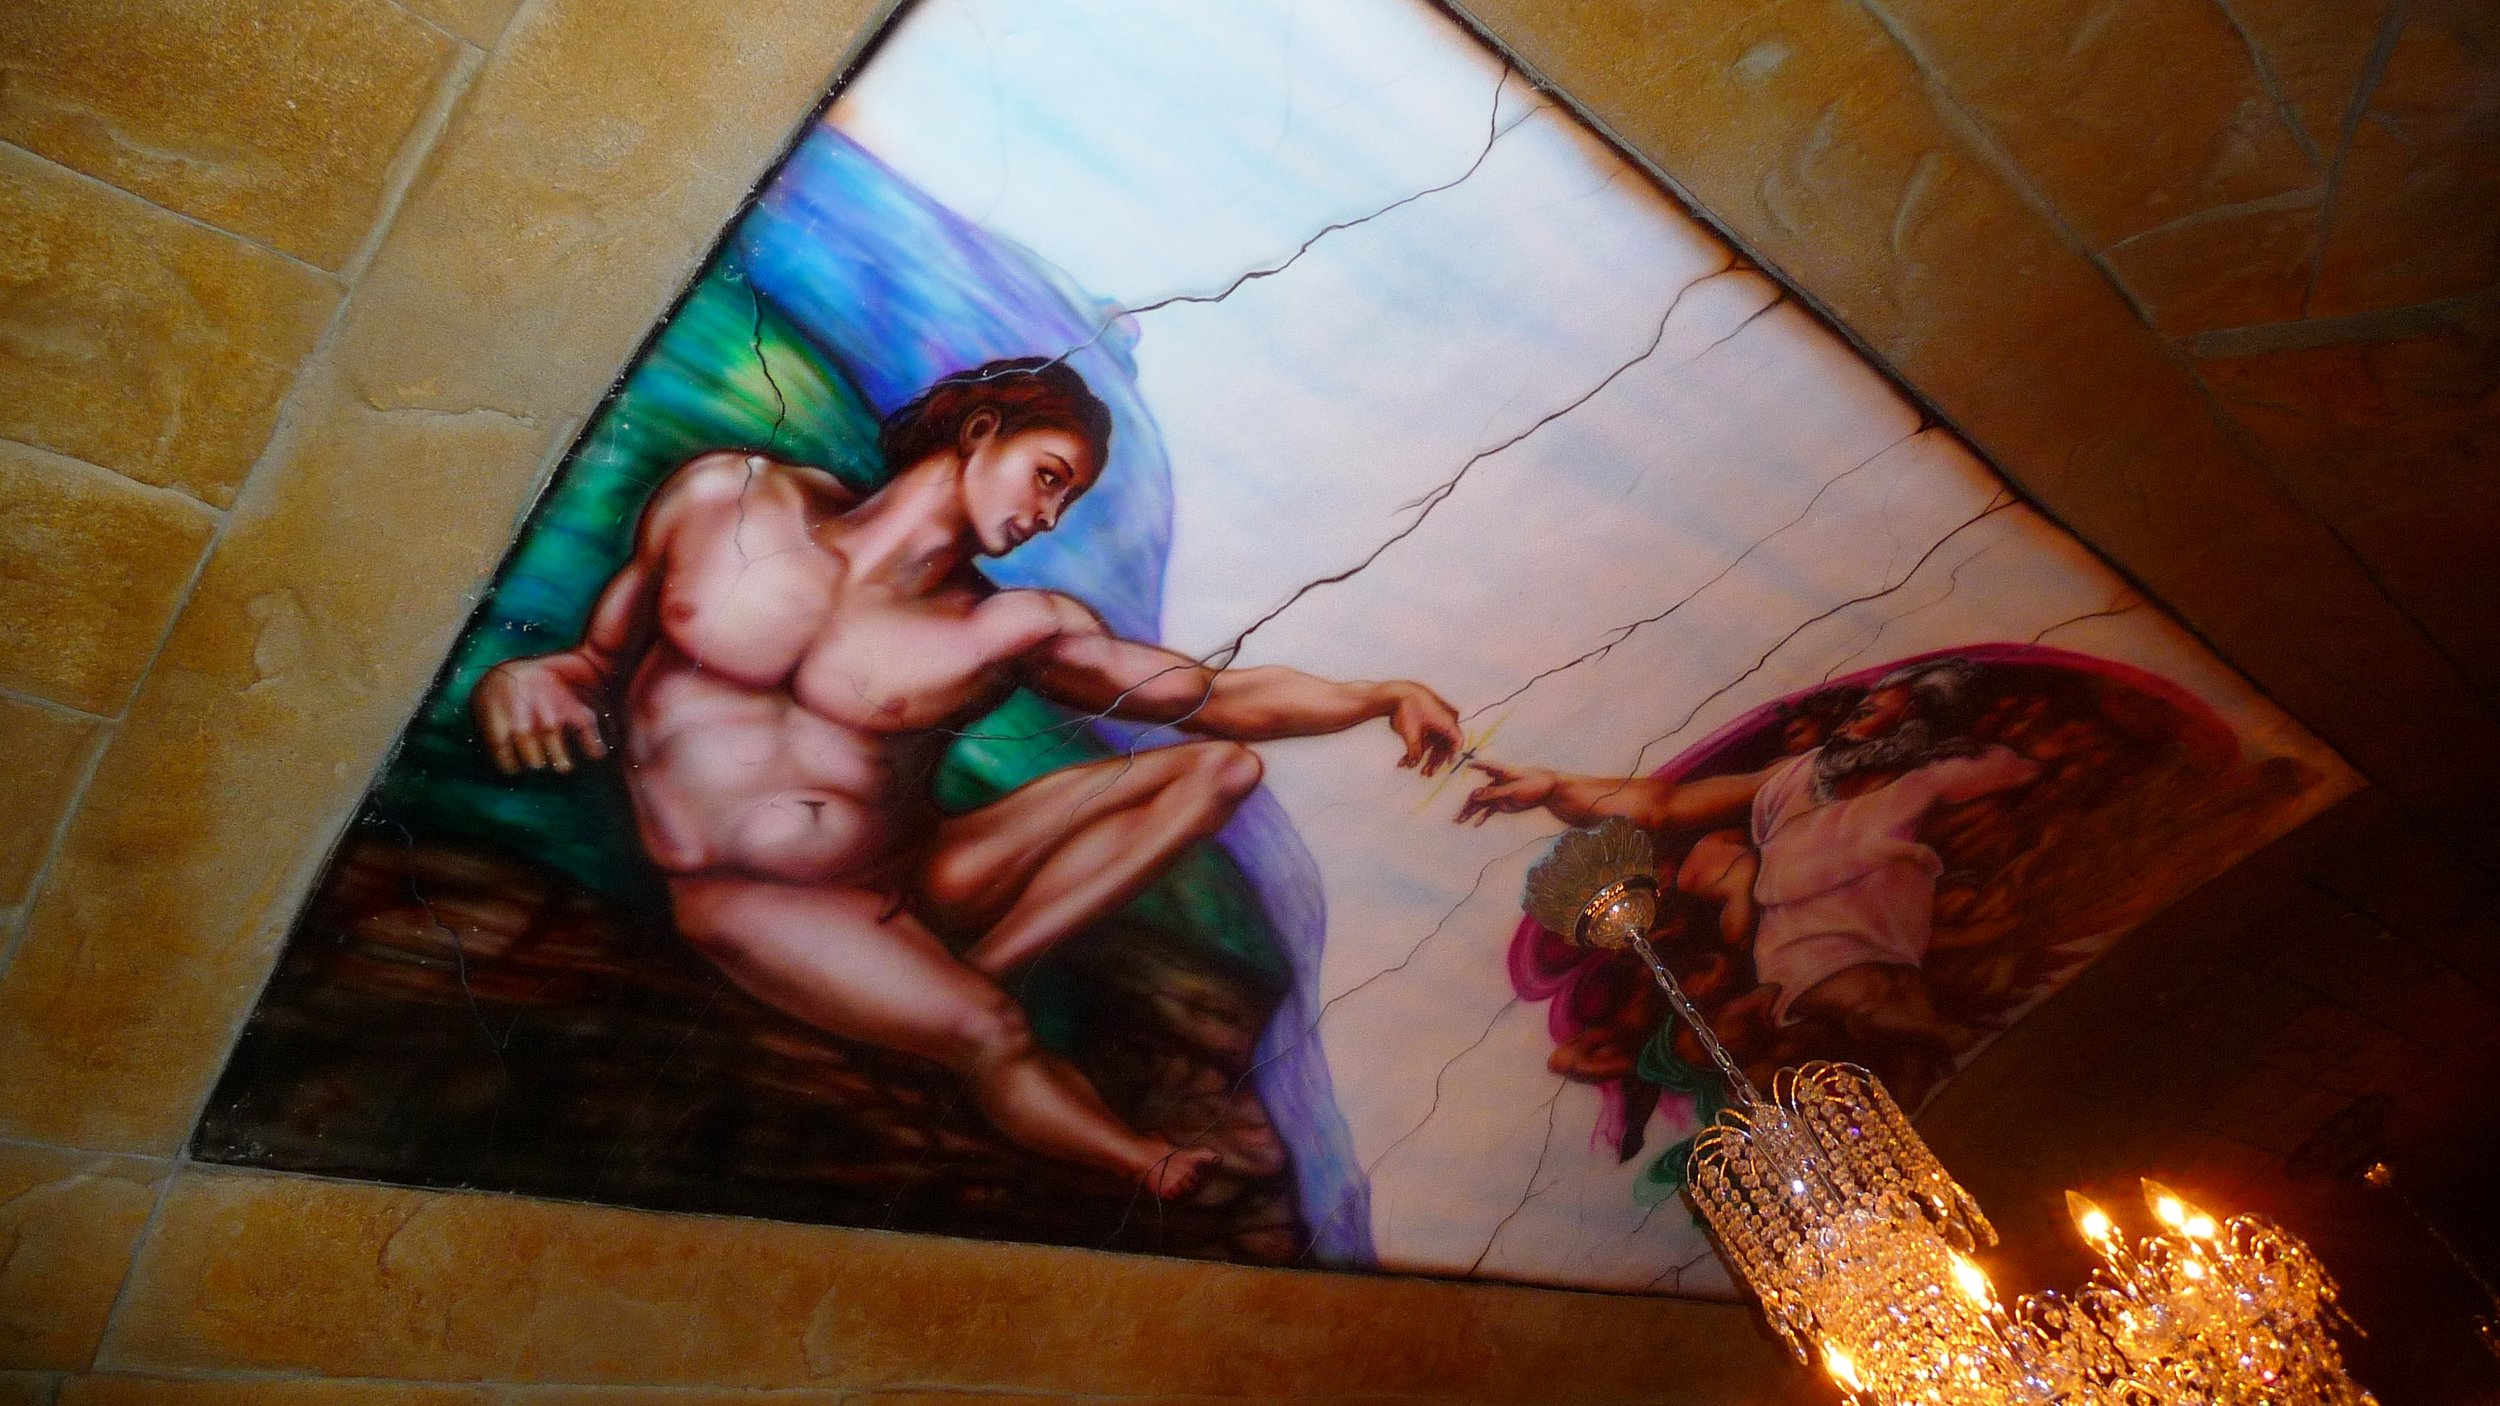 A replica of Michelangelo's Creation of Adam in the exquisite event space inside the wine cave of Reustle Prayer Rock Vineyards